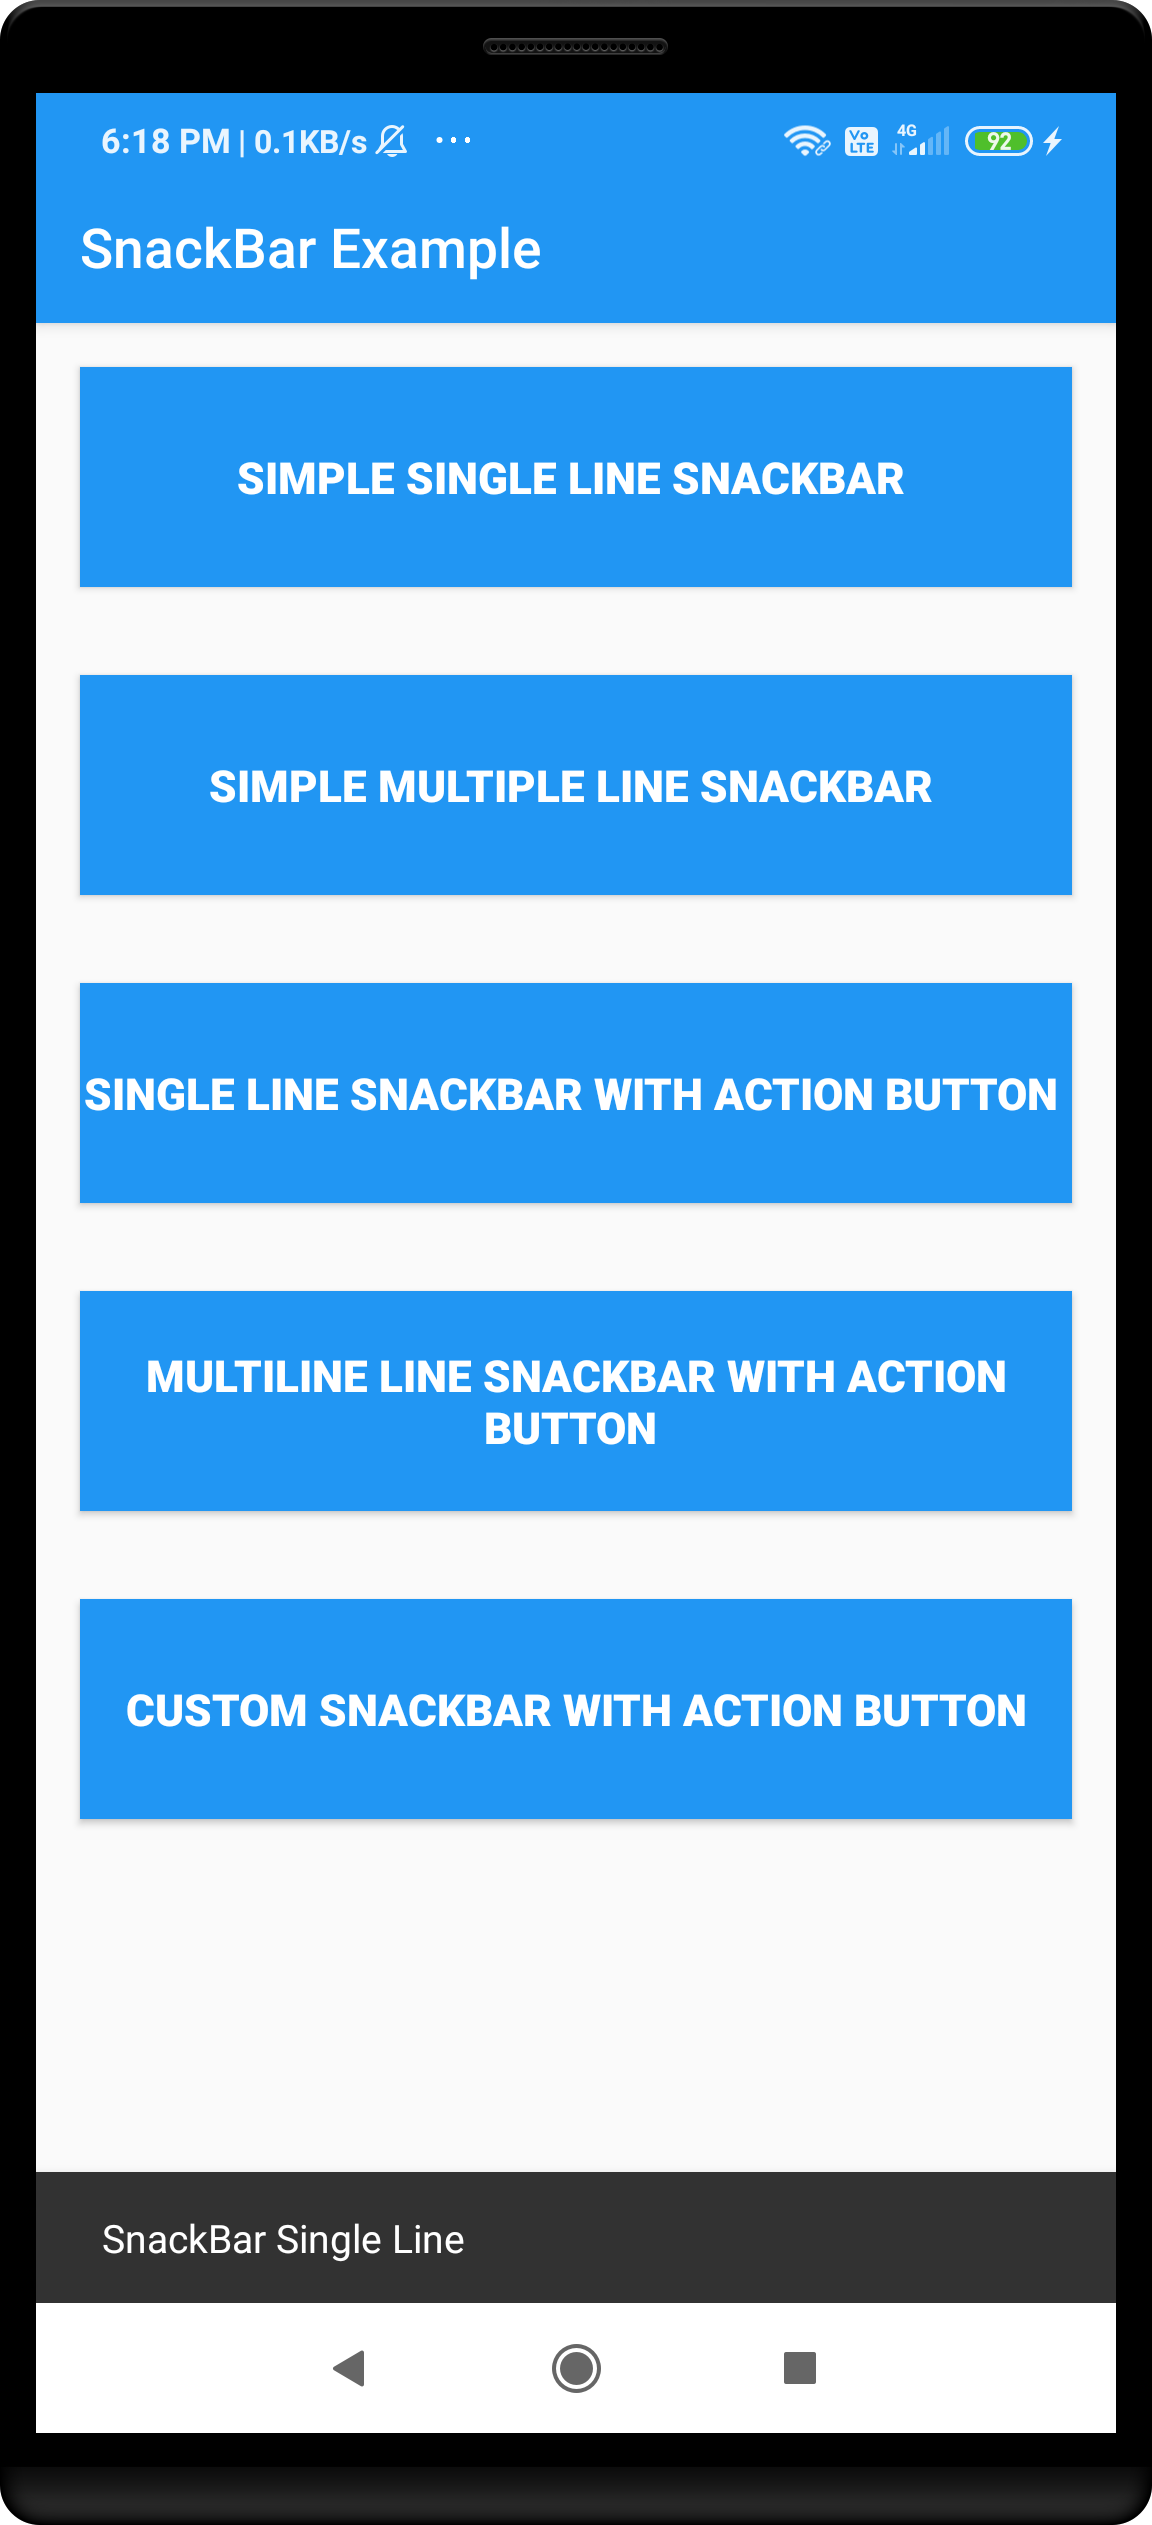 Android single line snackbar example